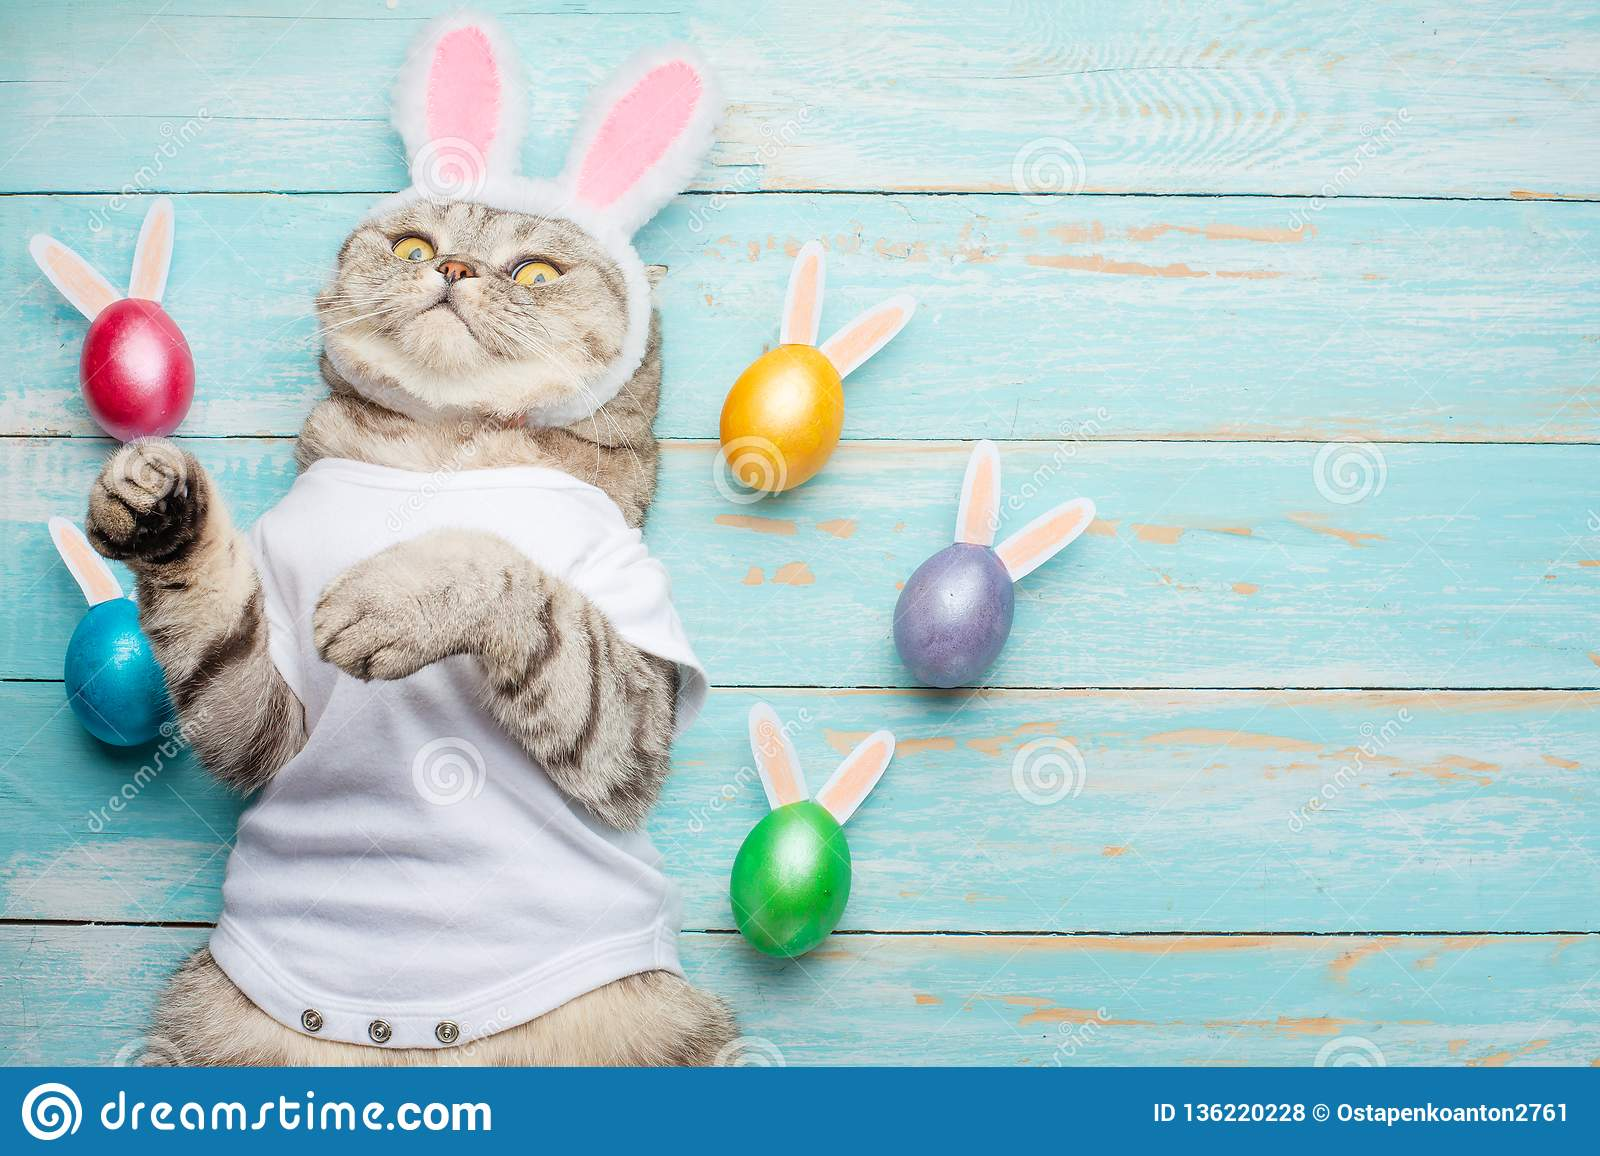 Easter bunny, cat with bunny ears and Easter colored with eggs and ears. Easter and holiday